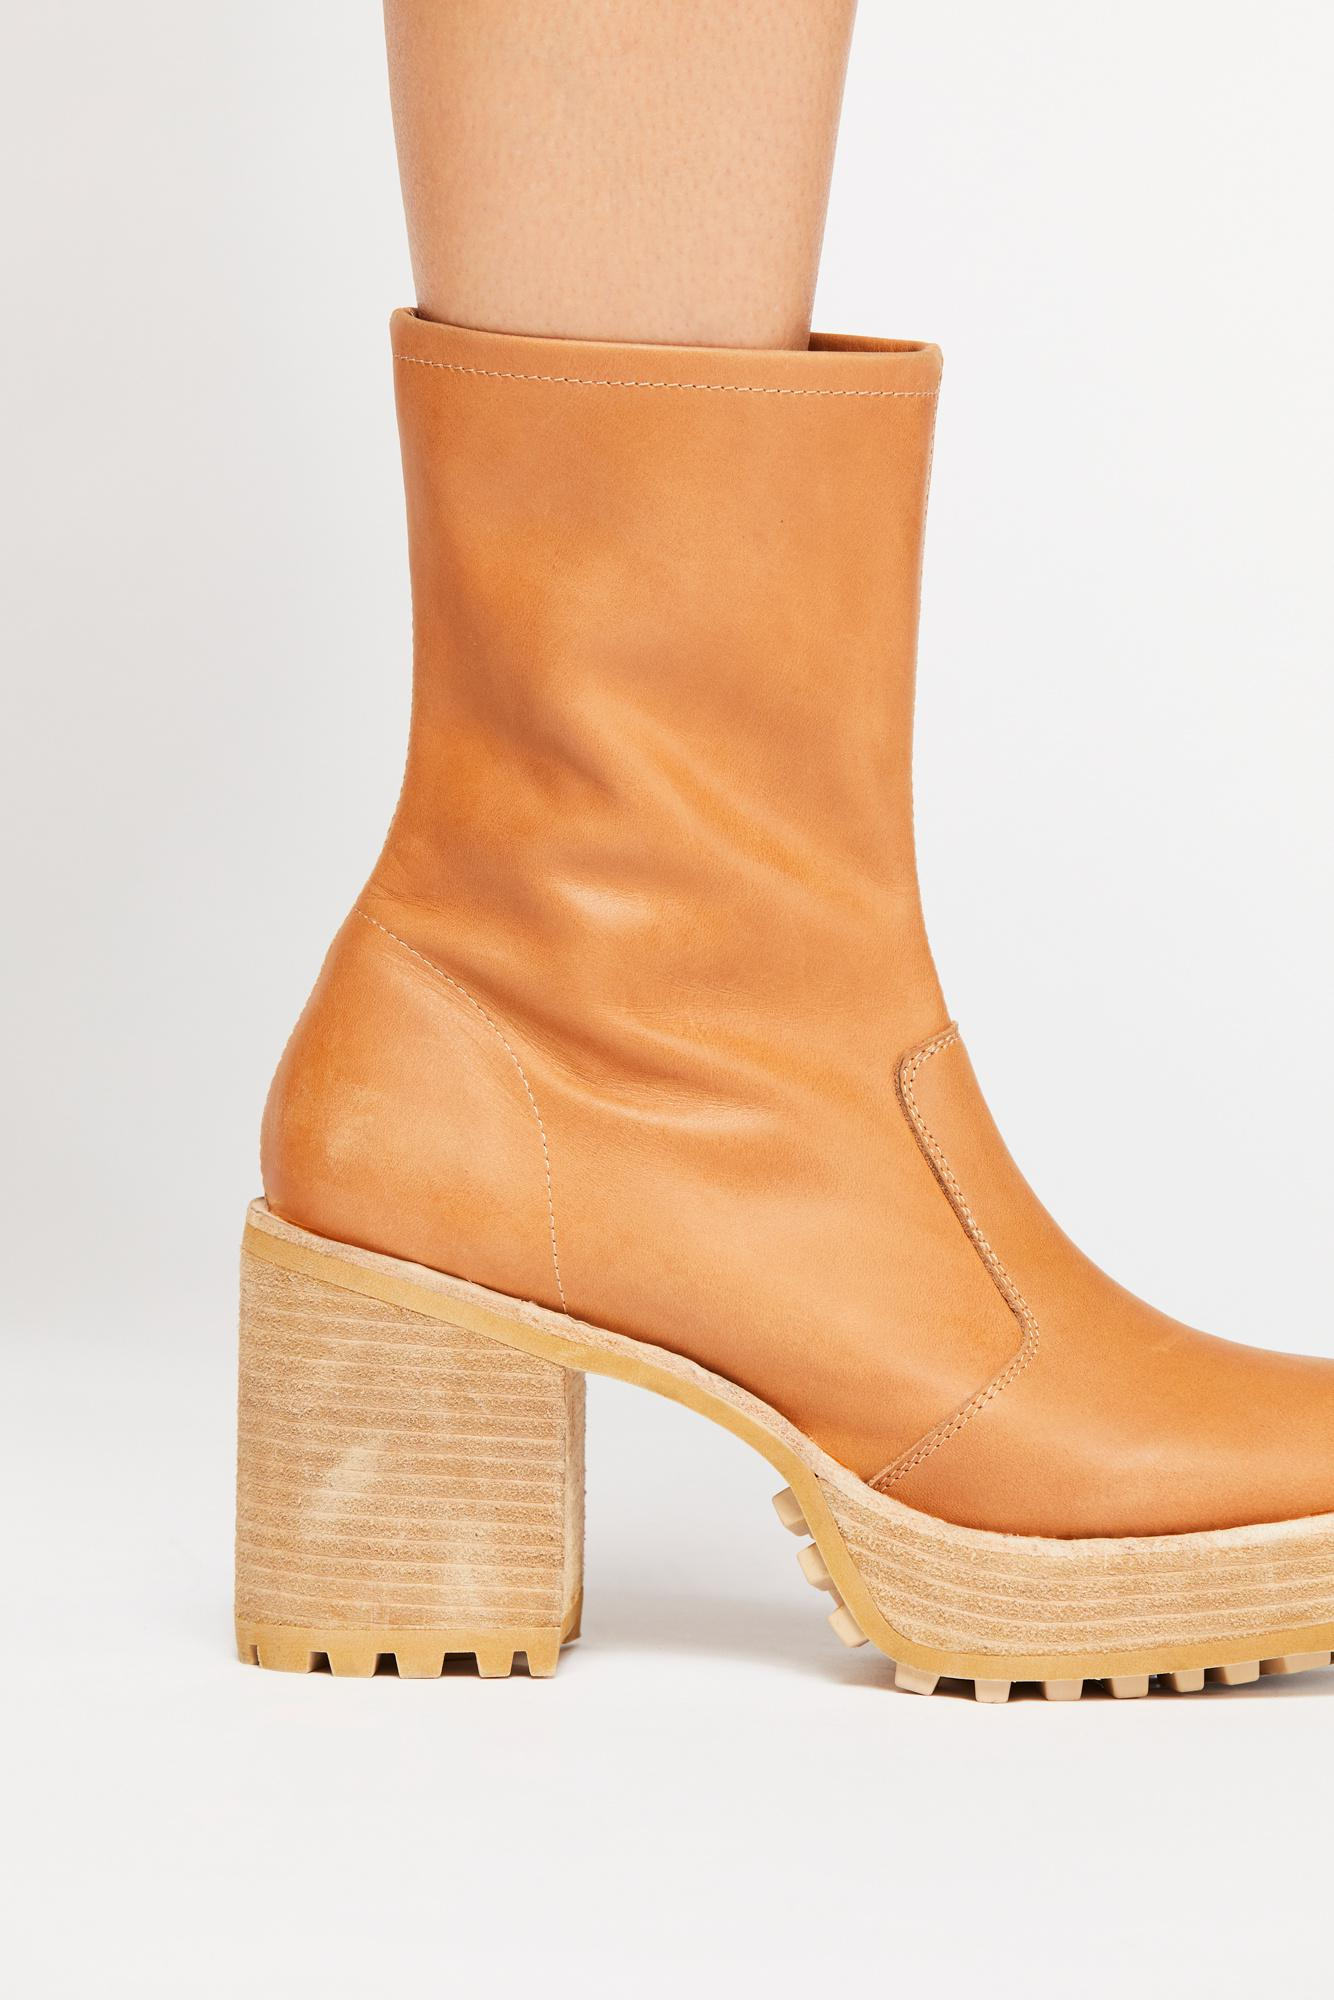 44eed61b56ff Lyst - Free People Costella Platform Boot